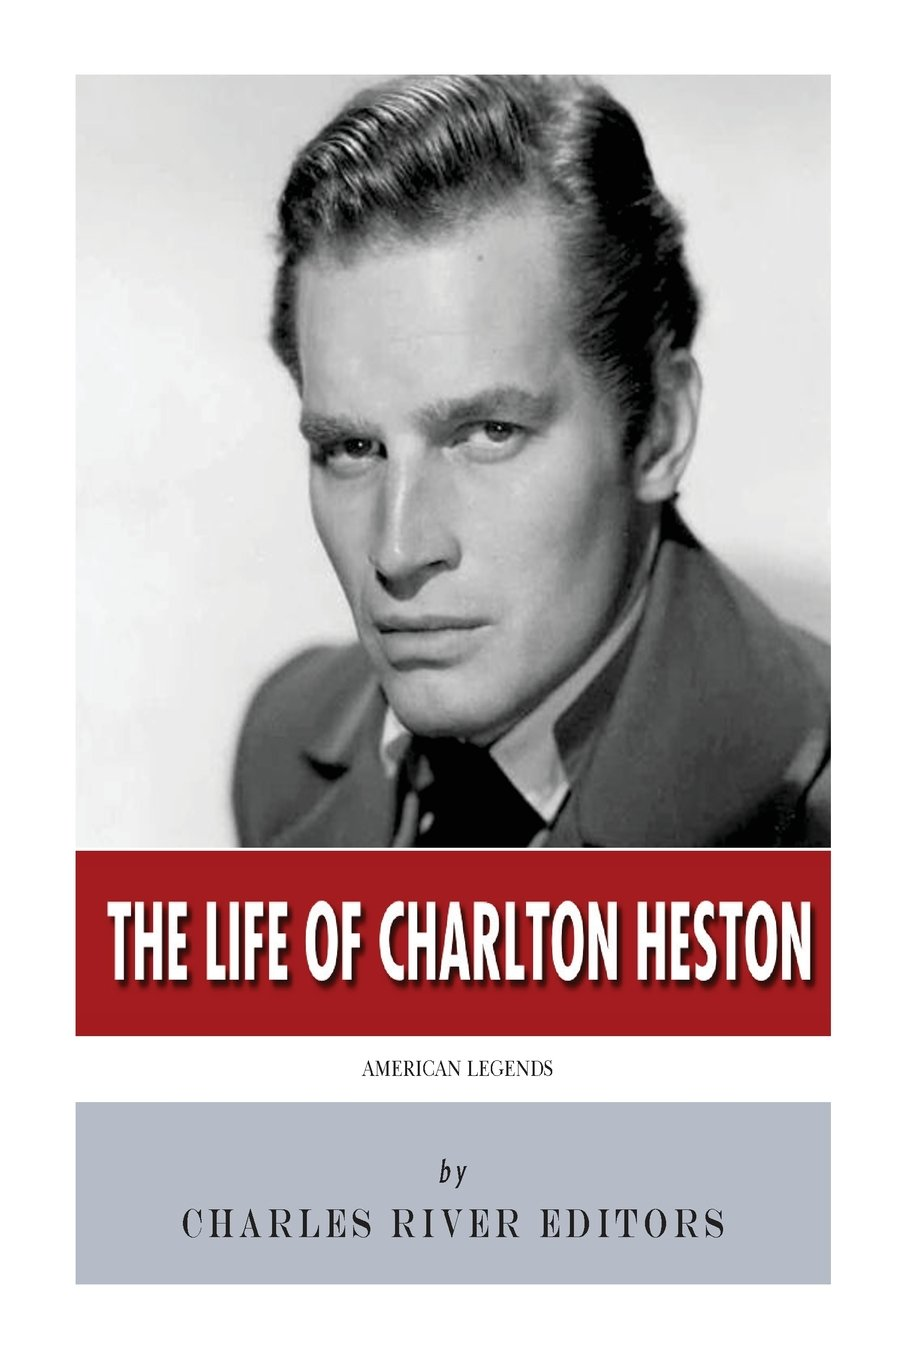 American Legends: The Life of Charlton Heston